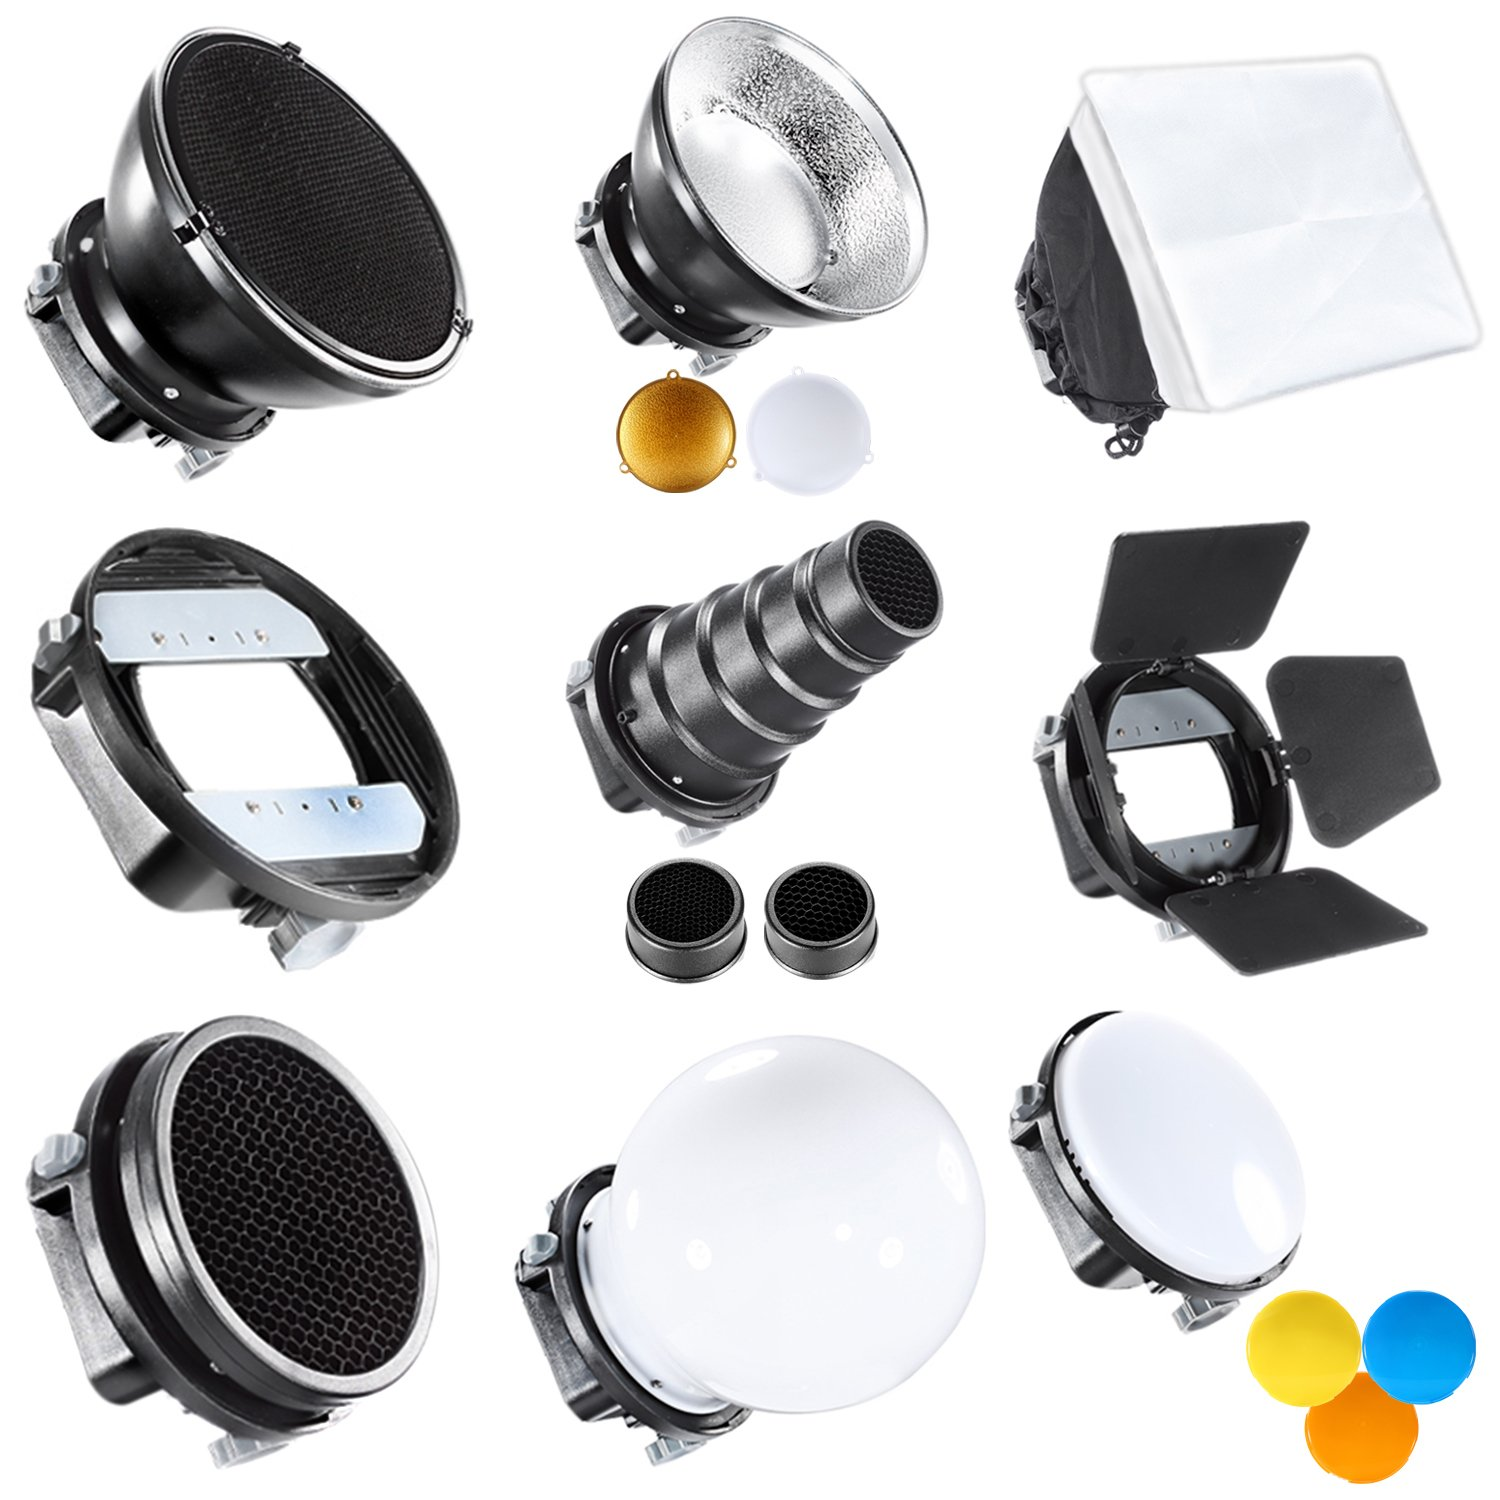 Neewer® Pro (Pro Version of Neewer® Product) Speedlite Flash Accessories Kit with Barndoor, Conical Snoot, Mini Reflector, Sphere Diffuser, Beaty Disc, 8'x12'/20x30 cm Softbox, Honeycomb, Colour Filters (Orange, Blue, White, Yellow), Universal Moun